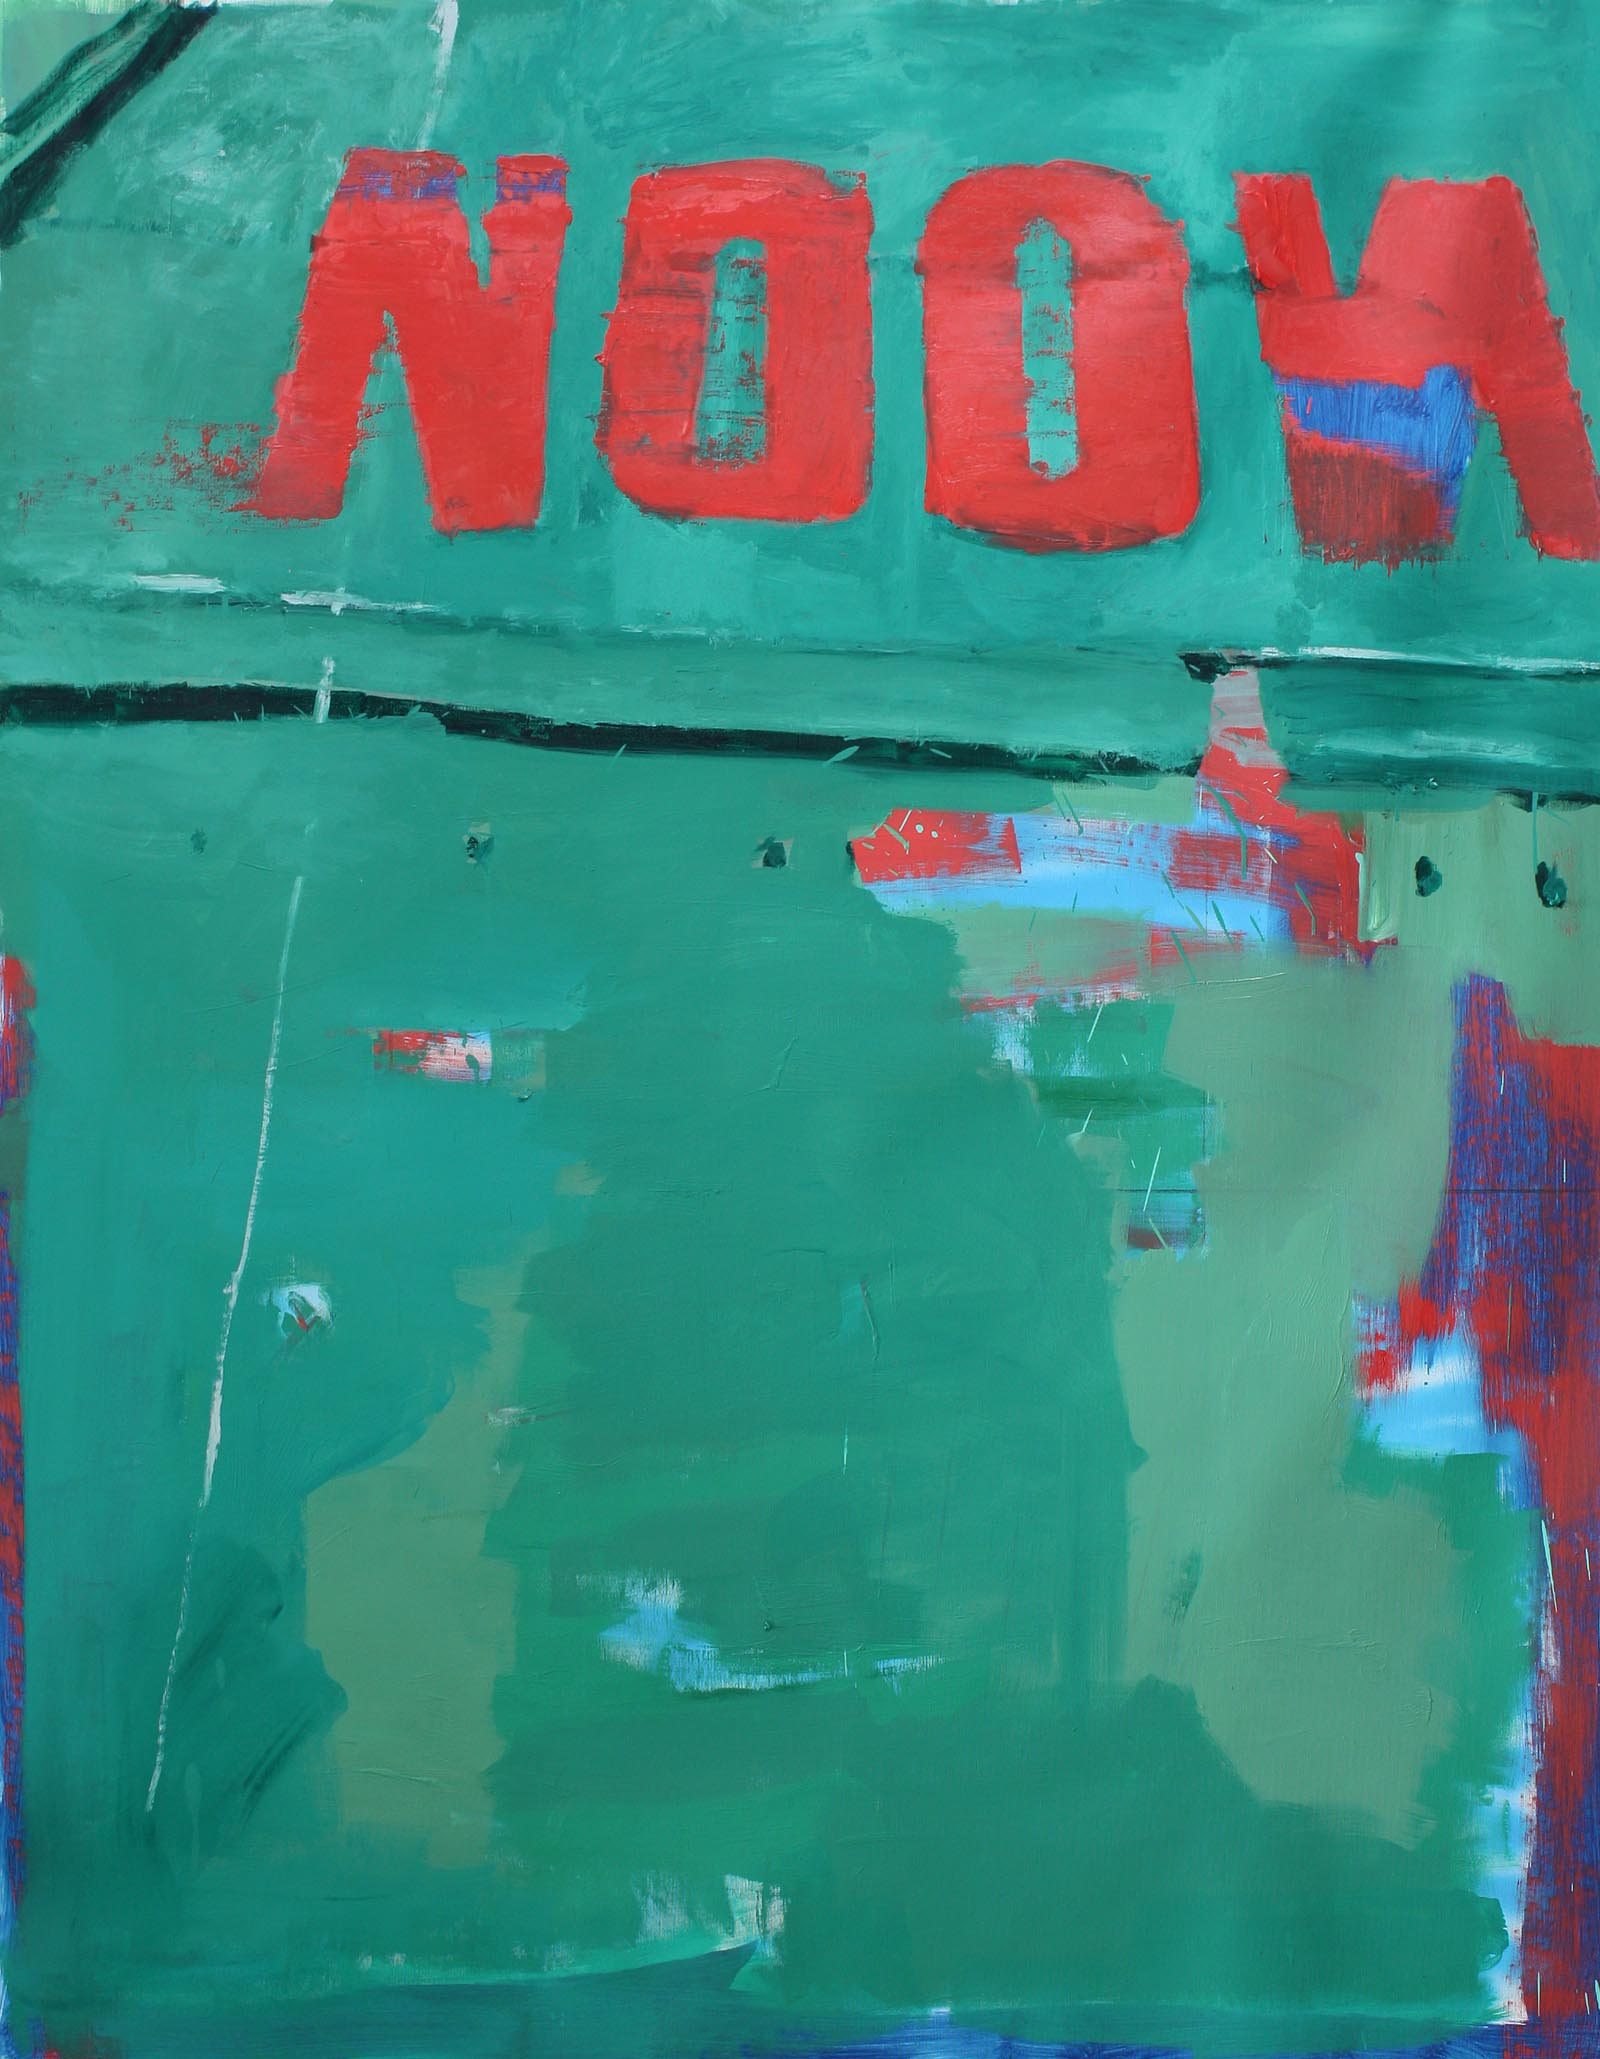 NOON<br/>Oil and spray on canvas<br/> 146 x 130 cm